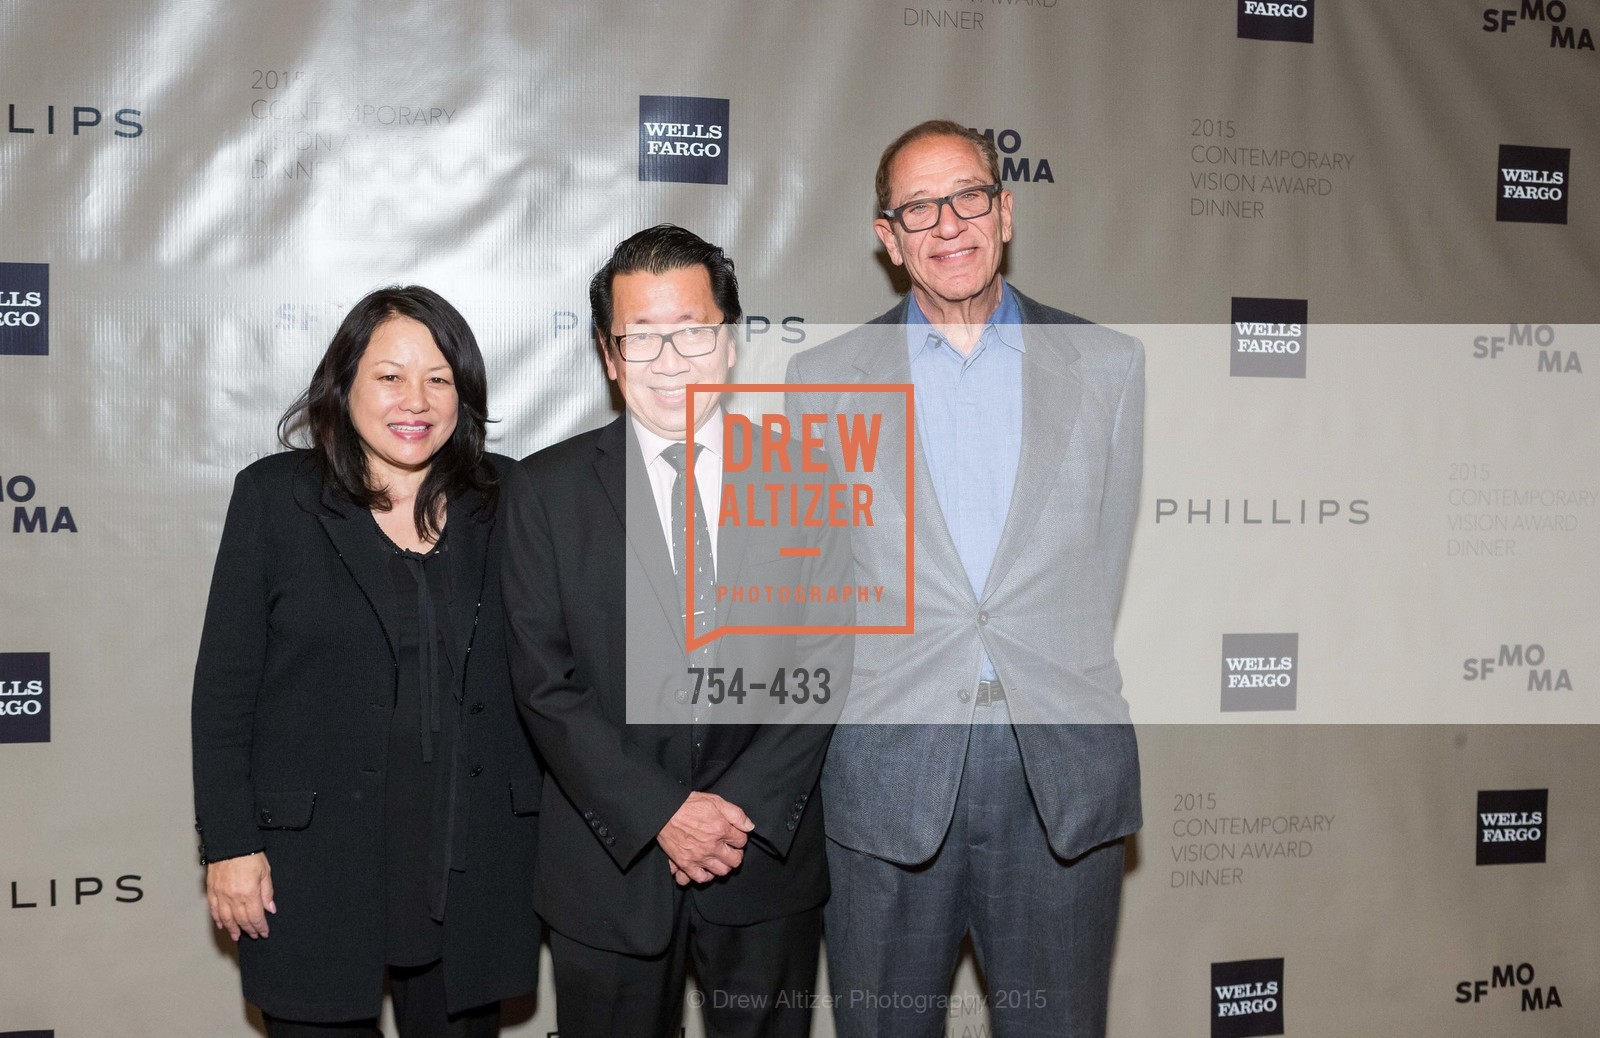 Suzanne Kai, Ben Fong-Torres, Stephen Rakower, SFMOMA Contemporary Vision Award, Regency Ballroom. 1300 Van Ness, November 3rd, 2015,Drew Altizer, Drew Altizer Photography, full-service agency, private events, San Francisco photographer, photographer california